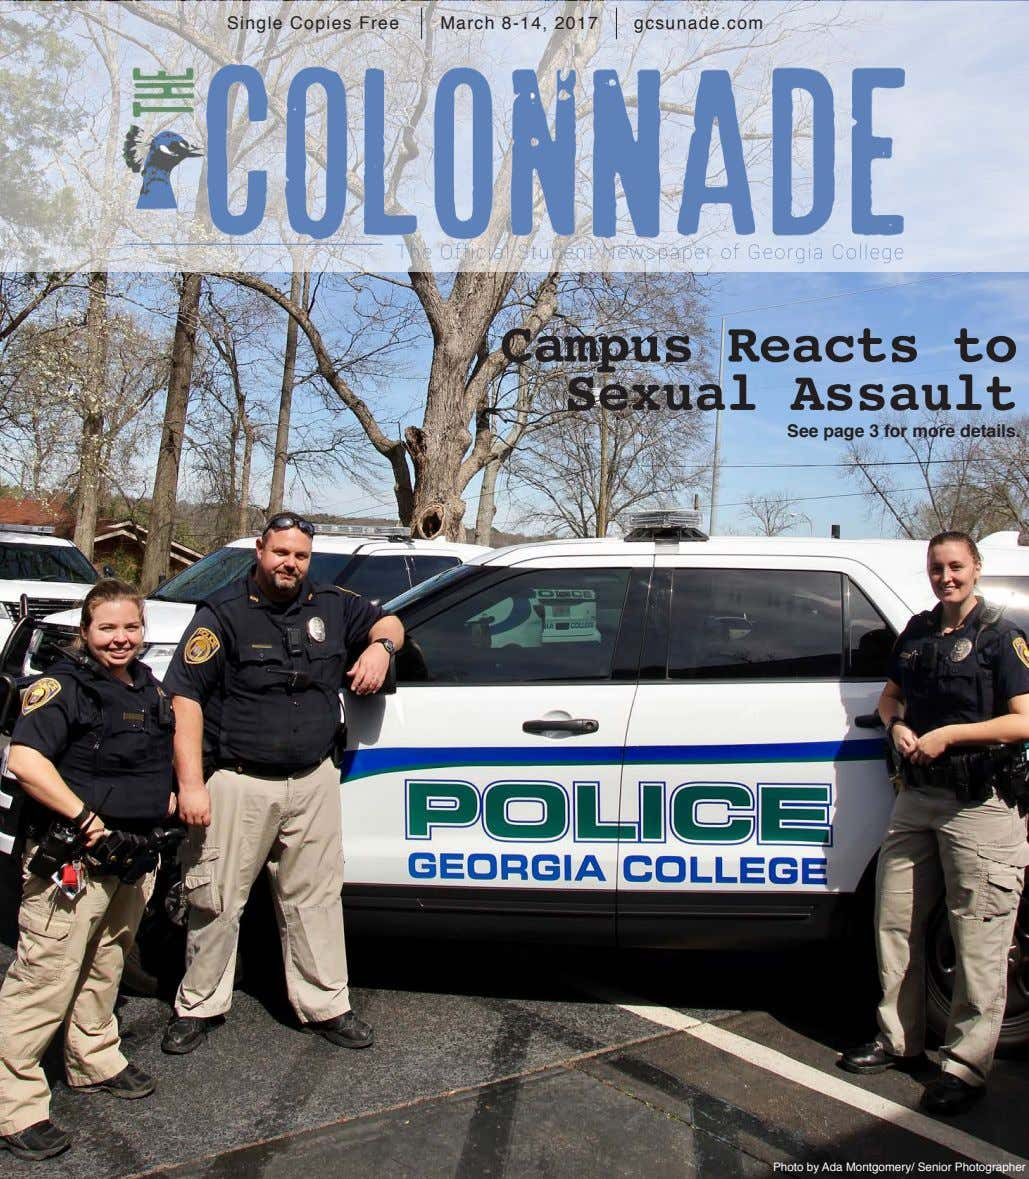 Single Copies Free March 8-14, 2017 gcsunade.com Campus Reacts to Sexual Assault See page 3